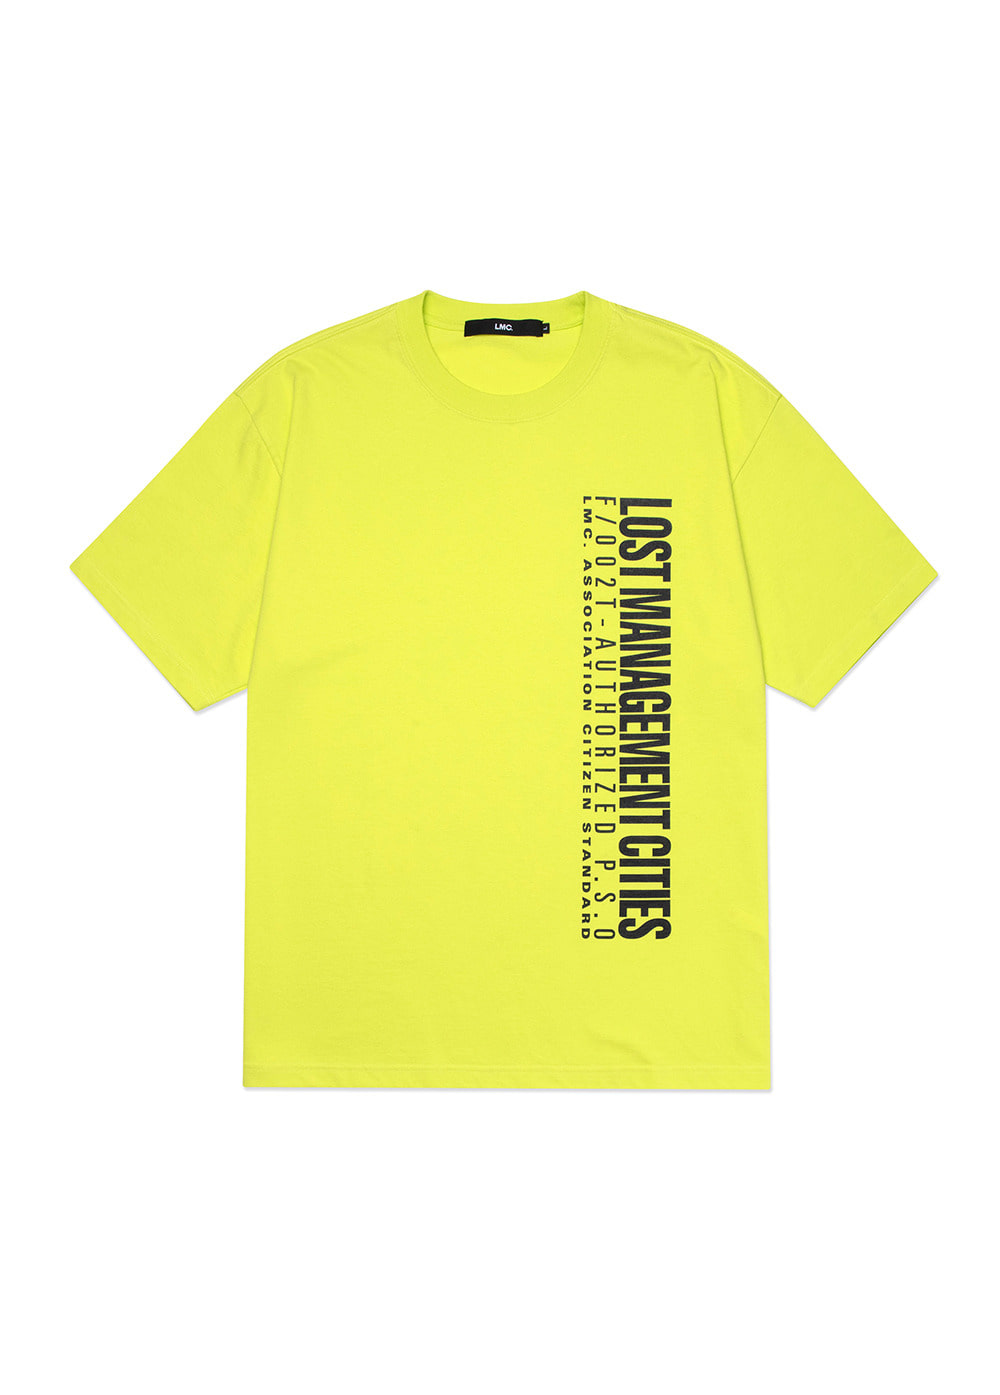 LMC AUTHORIZED LOGO TEE lime